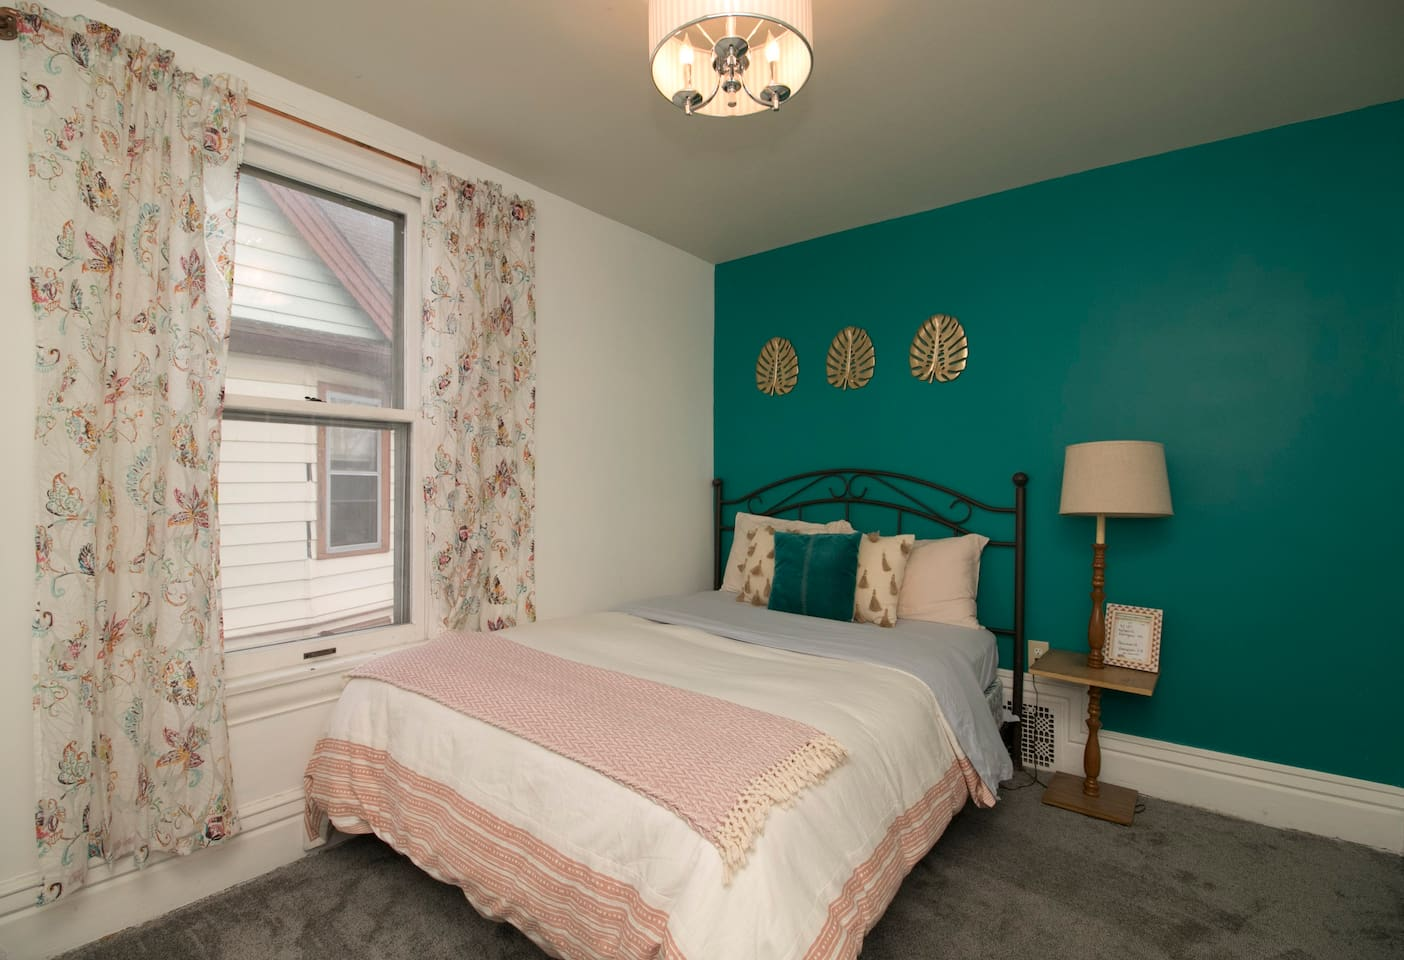 Your private bedroom- complete with linens and towels for your needs and a window AC unit. Brand new carpet. You are located on the 2nd floor of the house. There are 3 other bedrooms as well as the full bathroom on this floor